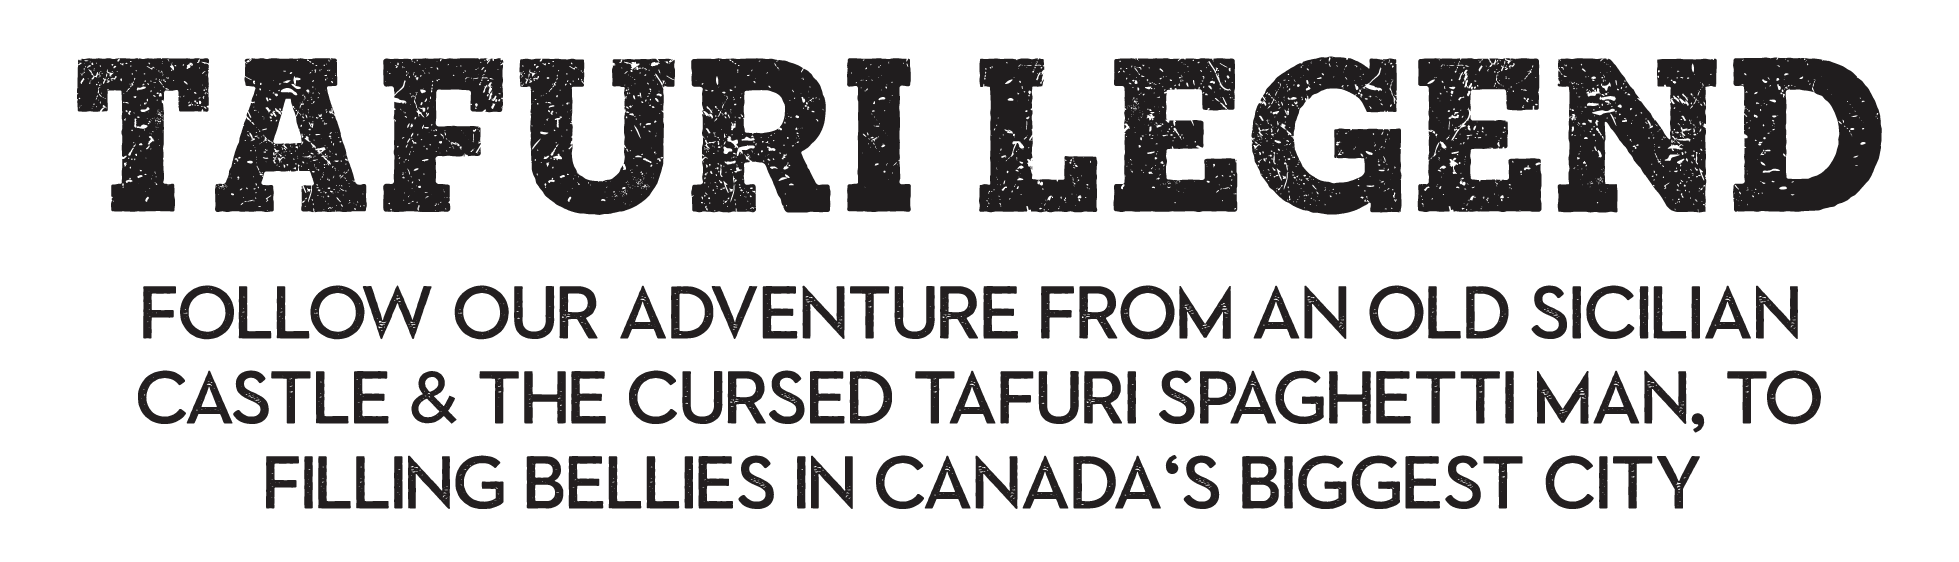 THE TAFURI LEGEND TEXT: Follow our adventure from an old Sicilian castle, a forest sorceress, and the cursed Tafuri Spaghetti Man, to filling grumbling Canadian bellies with authentic italian grub.